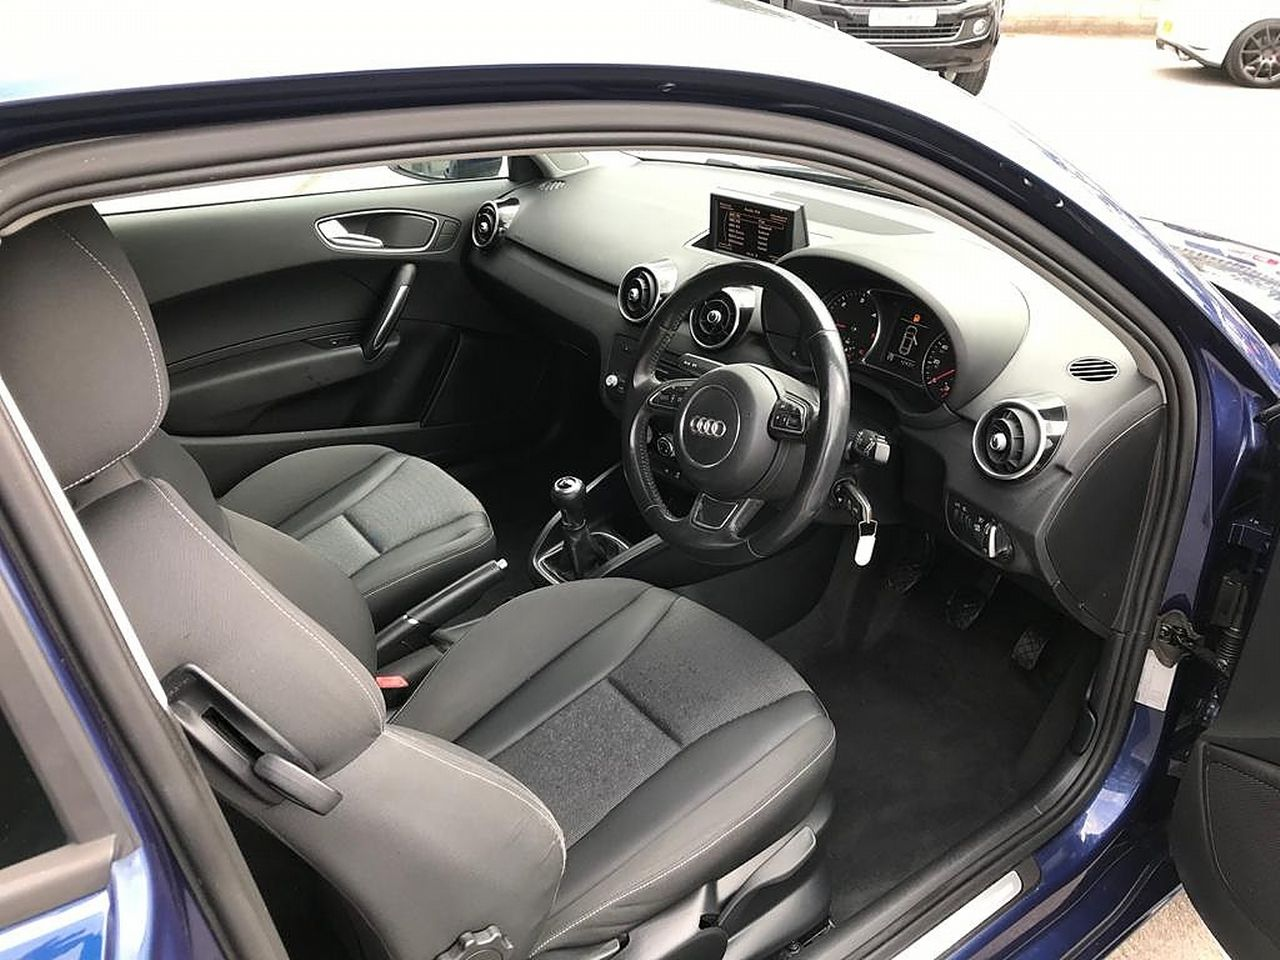 2011 AUDI A1 1.6 TDI Sport 105PS - Picture 11 of 19